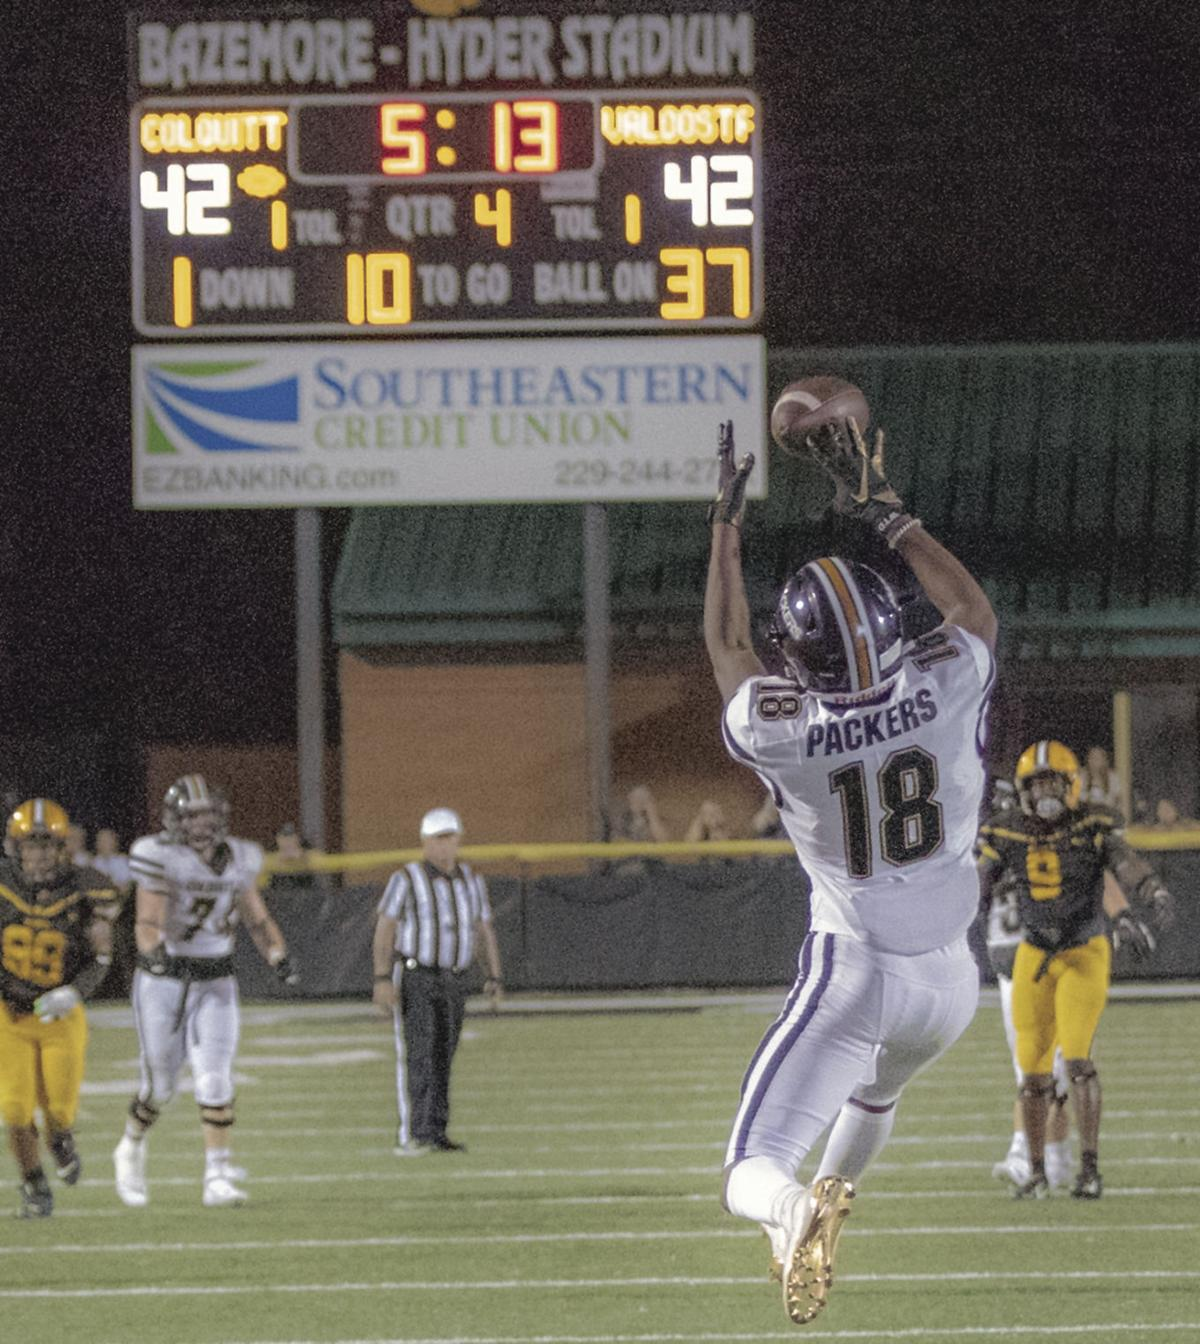 Packers fall in thriller to Valdosta 50-49